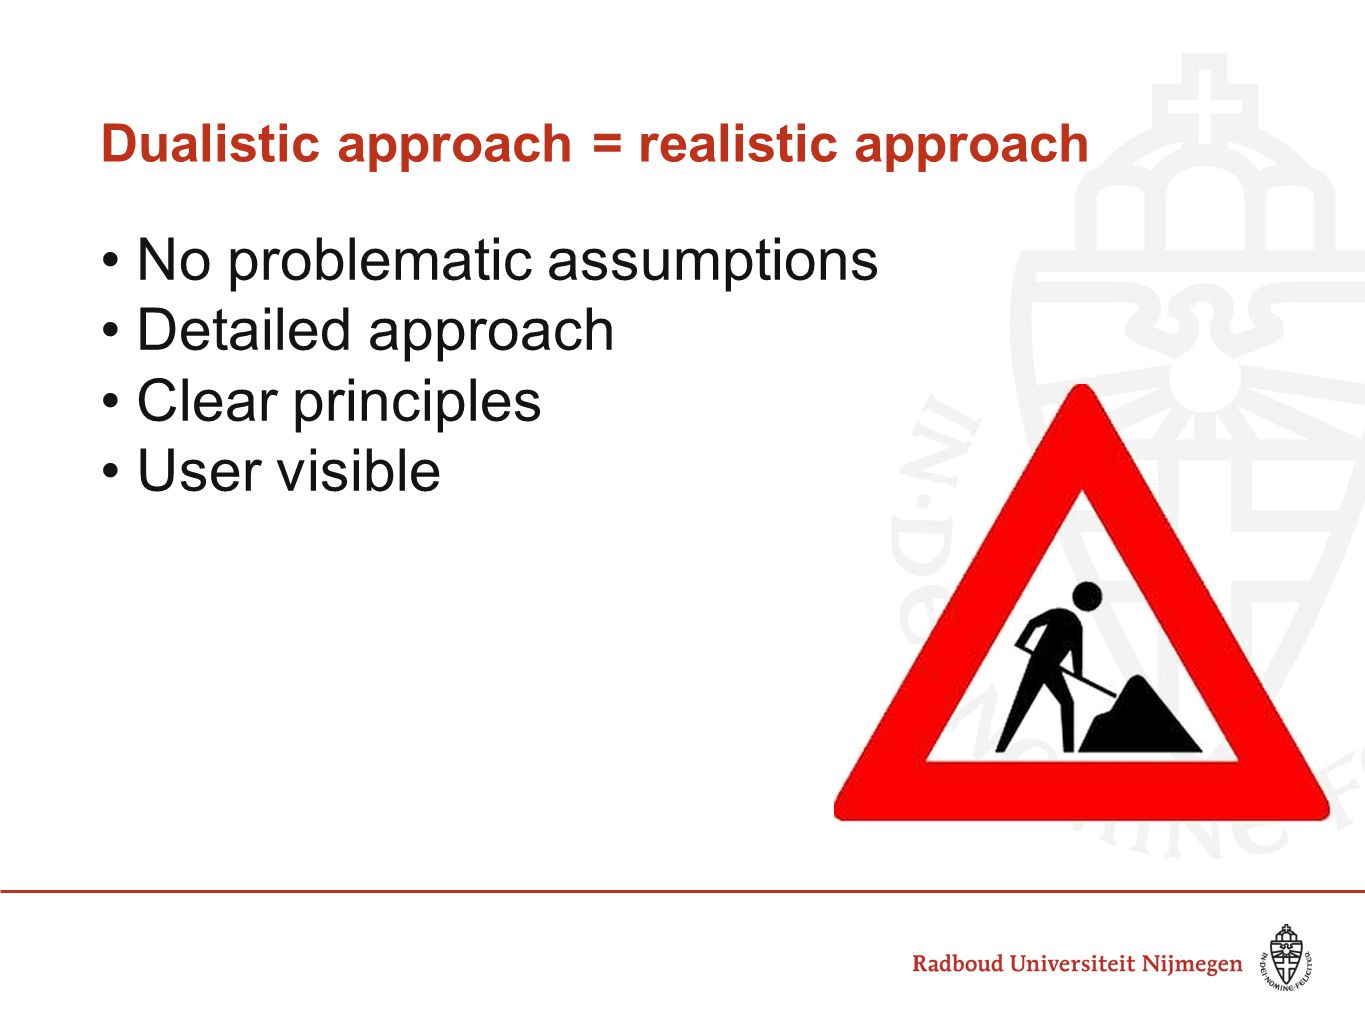 Dualistic approach = realistic approach